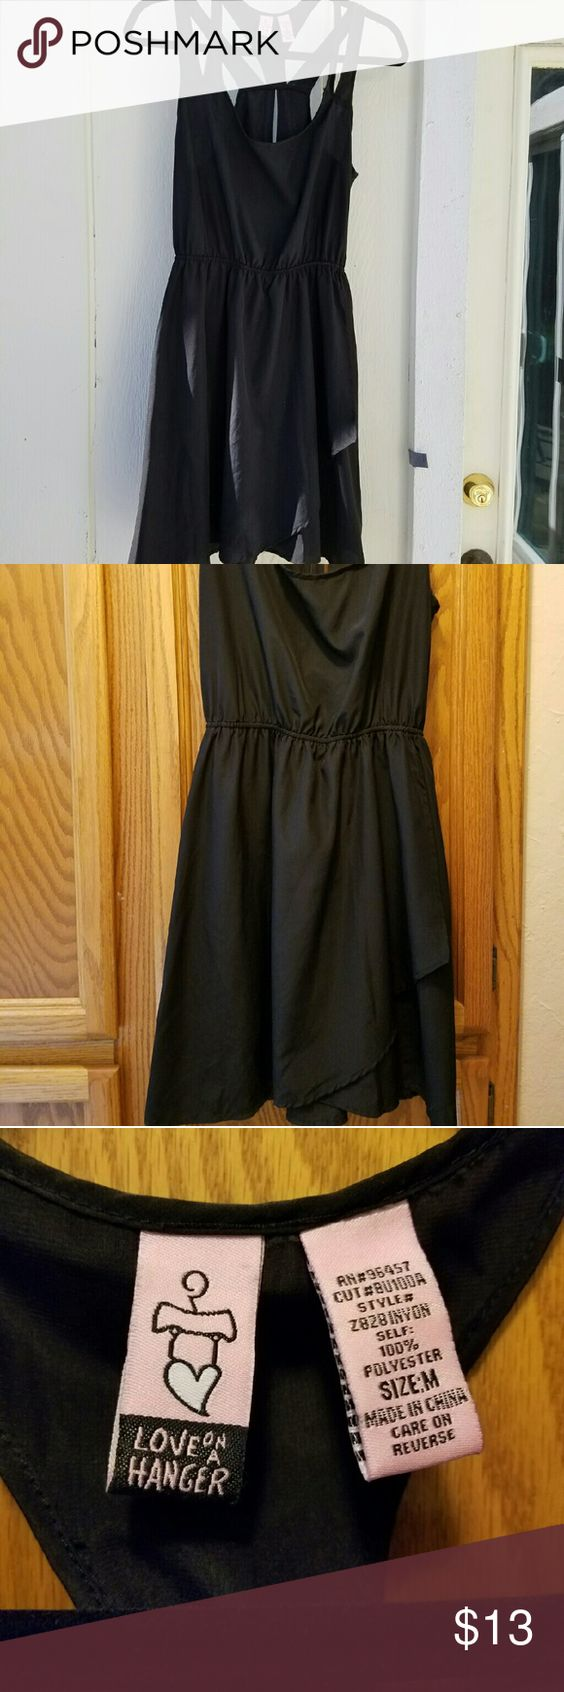 Dress medium Black dress.  Very flattering.  Worn once Dresses Midi